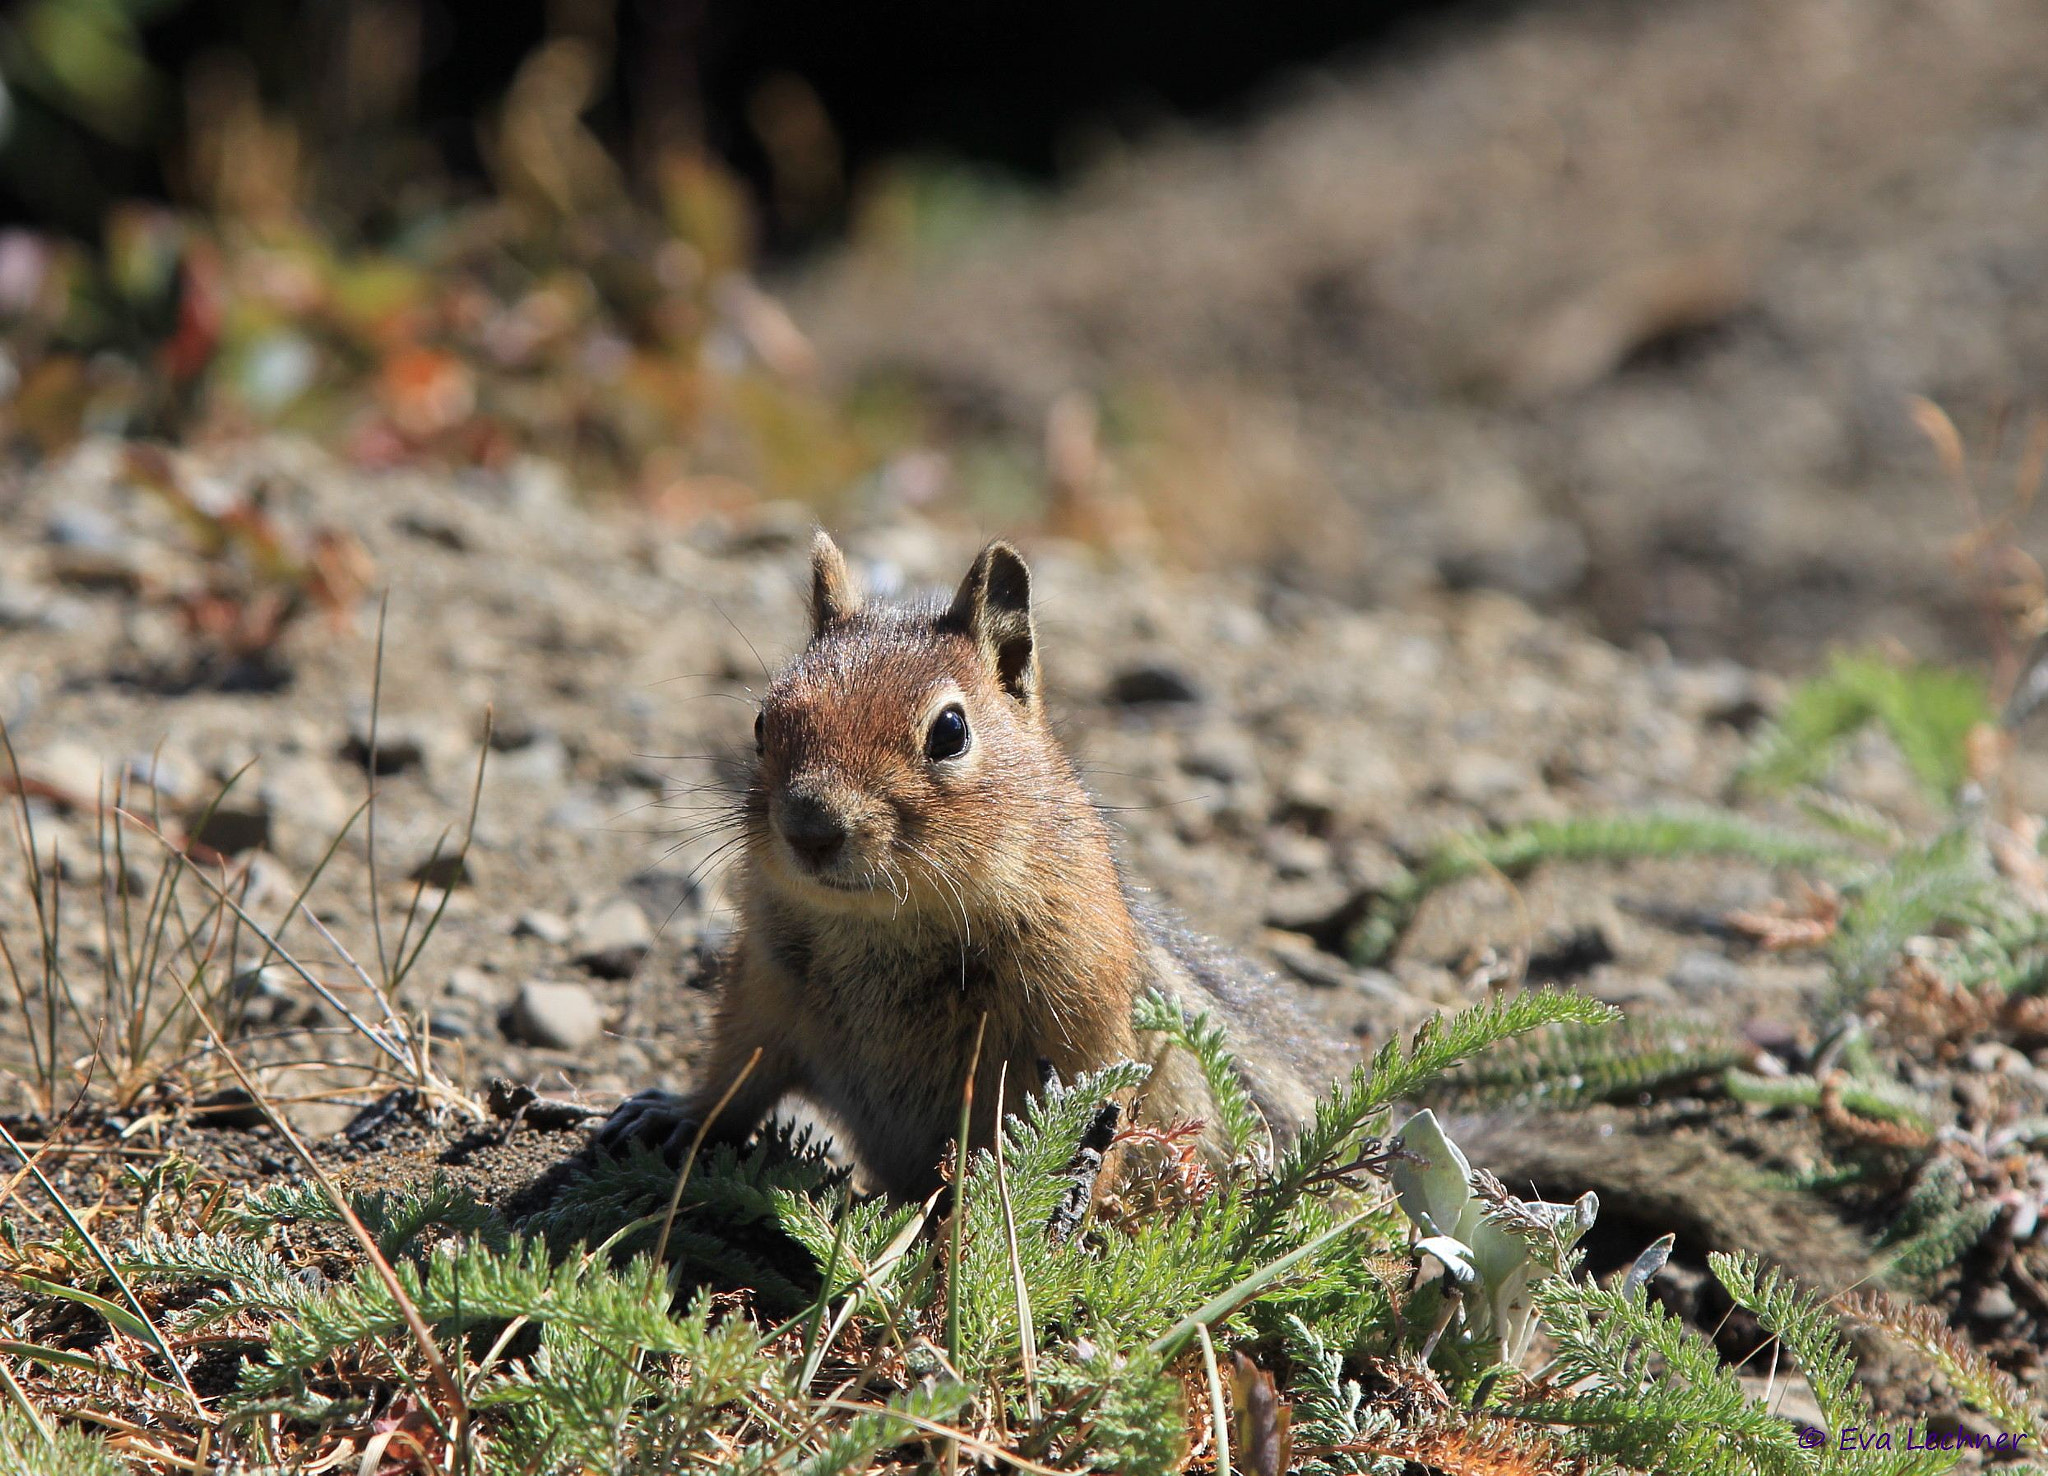 Photograph Golden-manteld squirrel by Eva Lechner on 500px